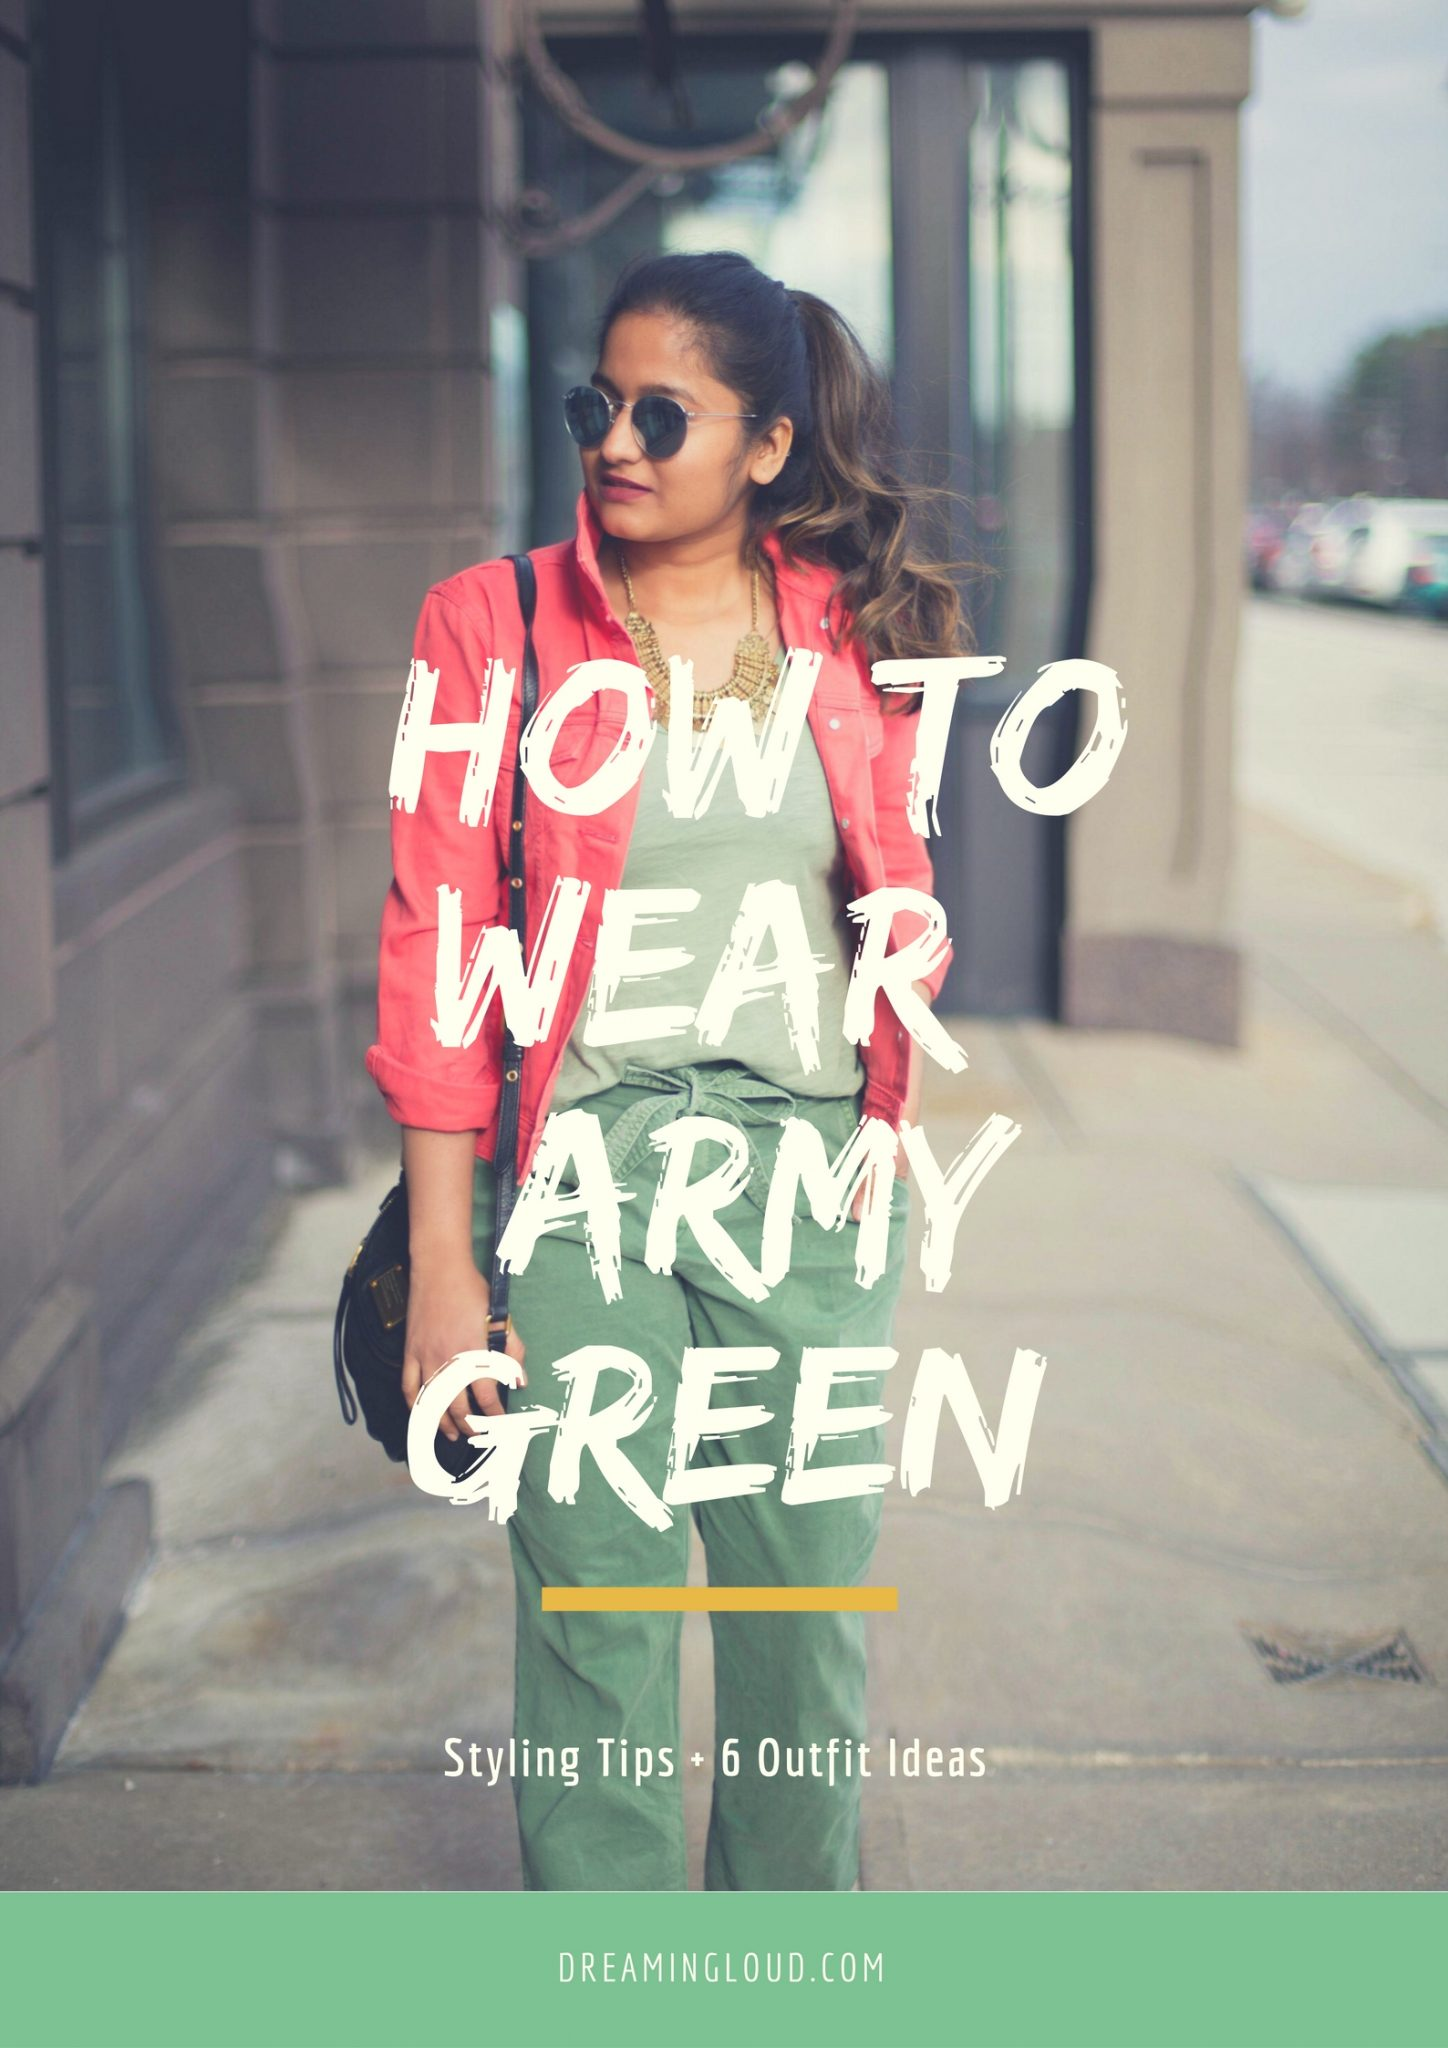 how-to-wear-khaki-olive-army-green-dreamingloud